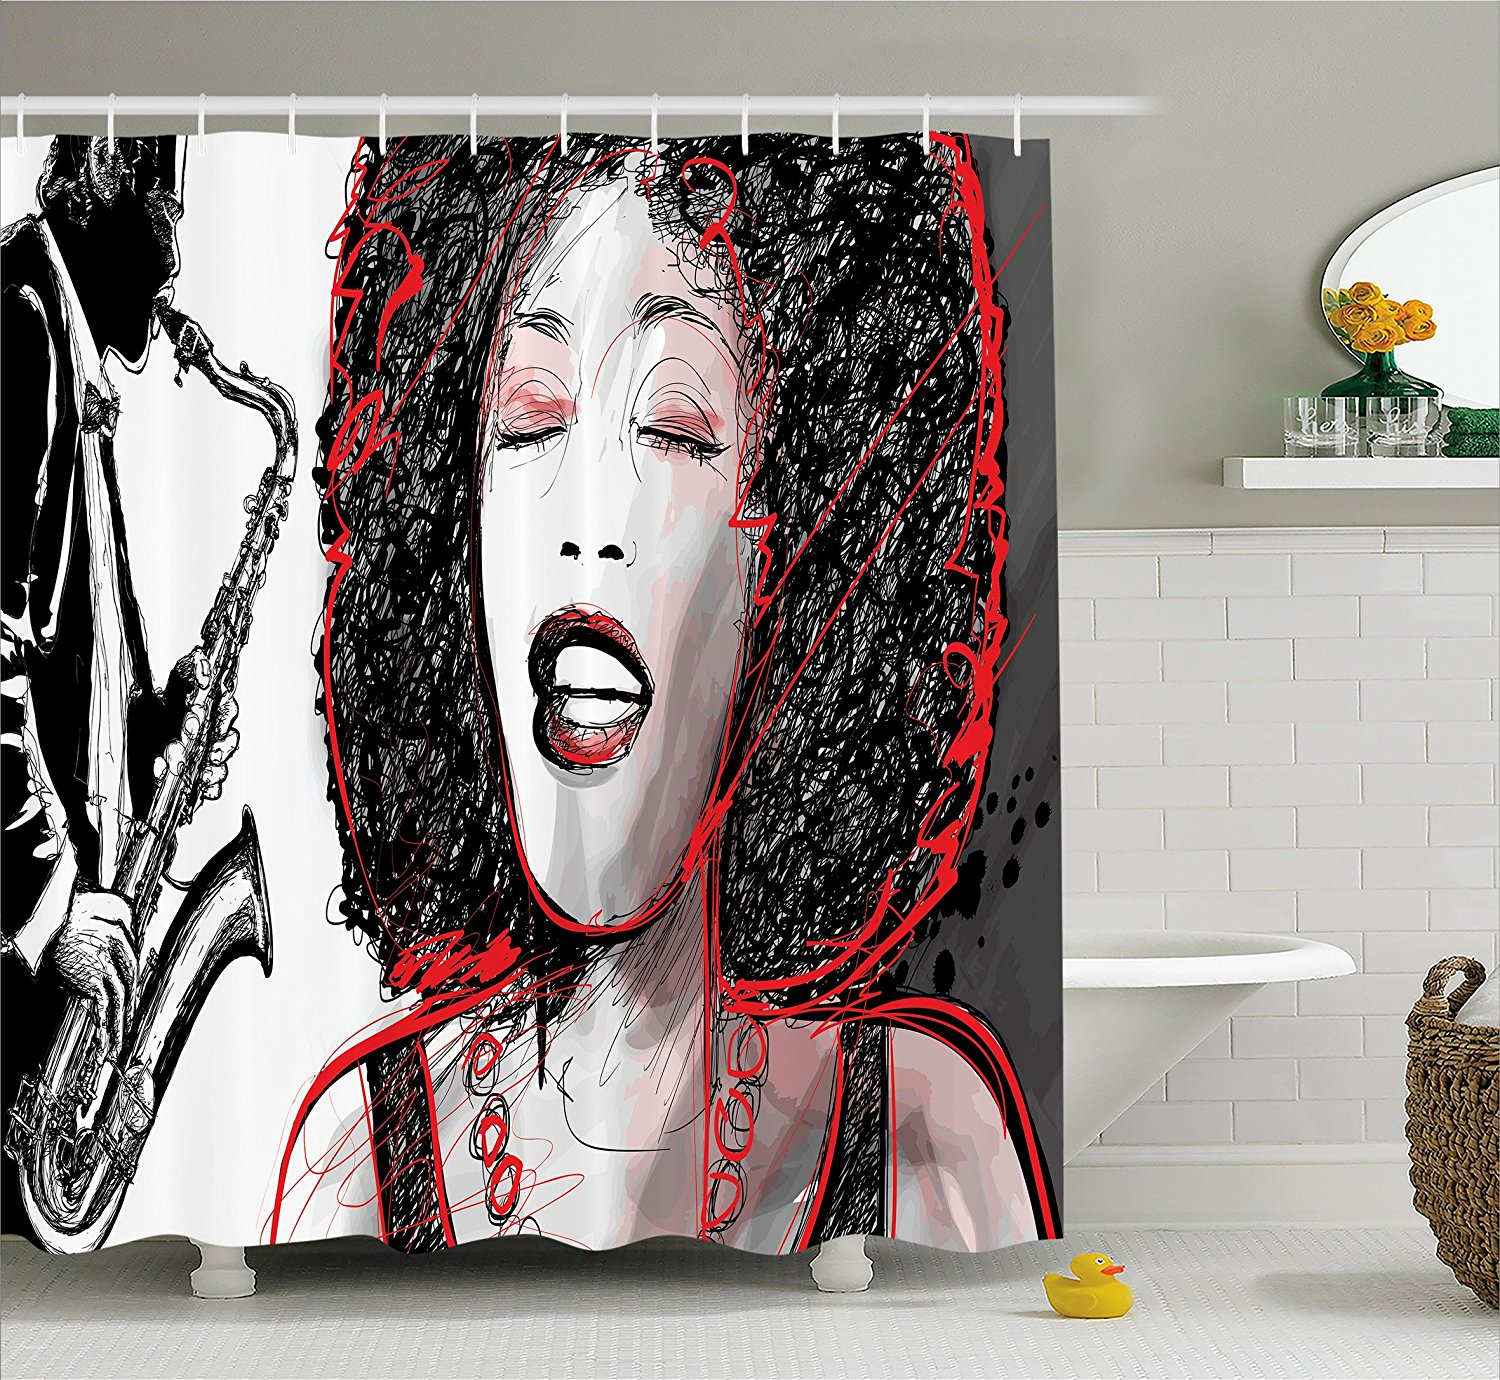 Shower Curtain by Ambesonne, African American Girl Singing with Saxophone Player Popular Sound Design